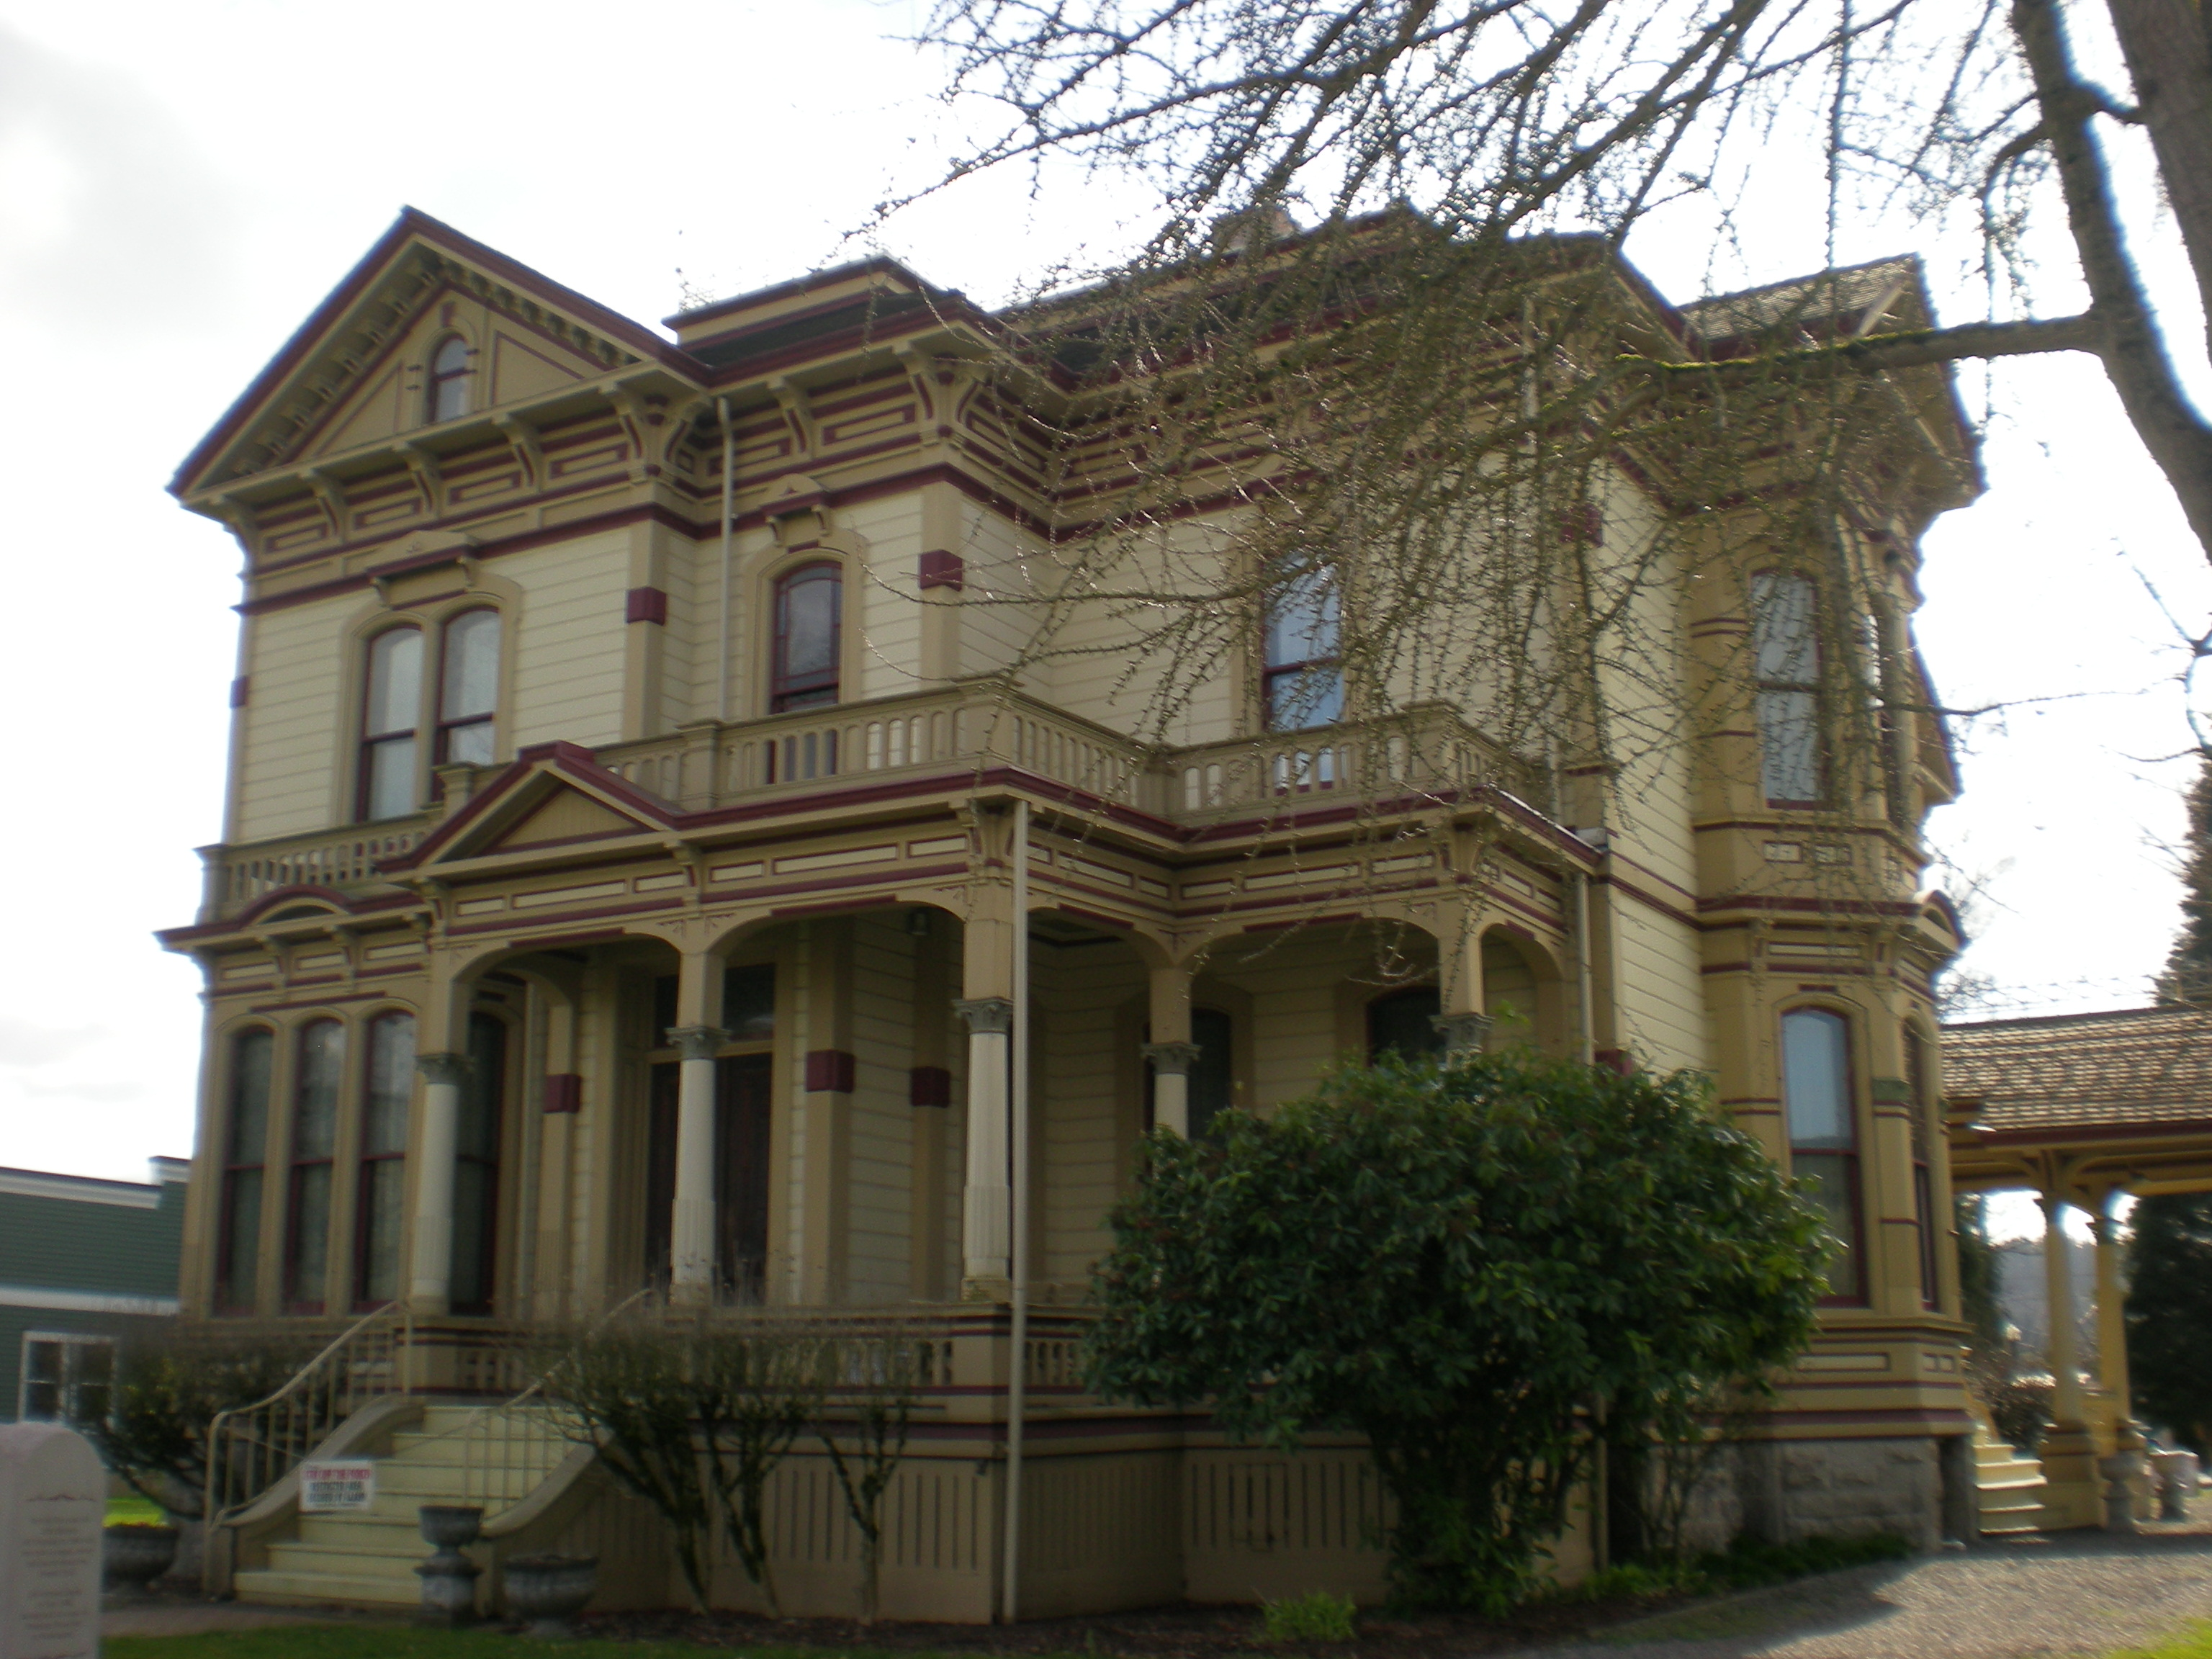 The tan and brown facade of the Meeker Mansion